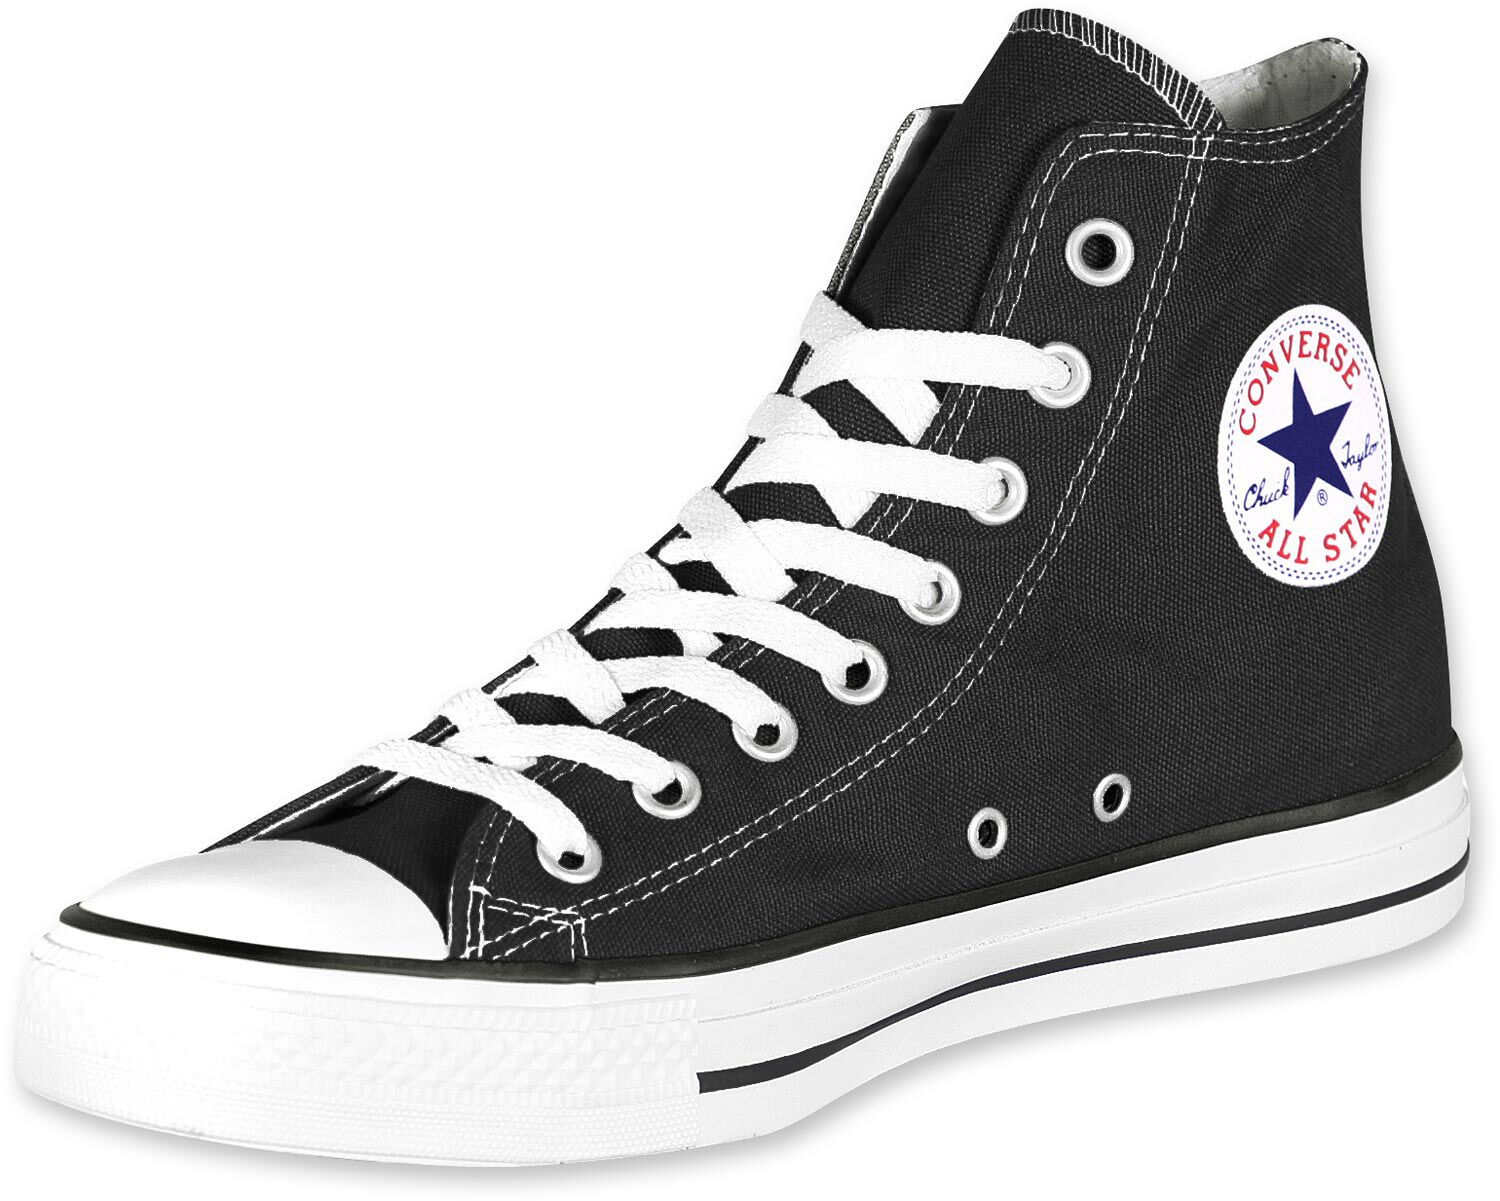 Converse All Star Hi chaussures noir SO42016